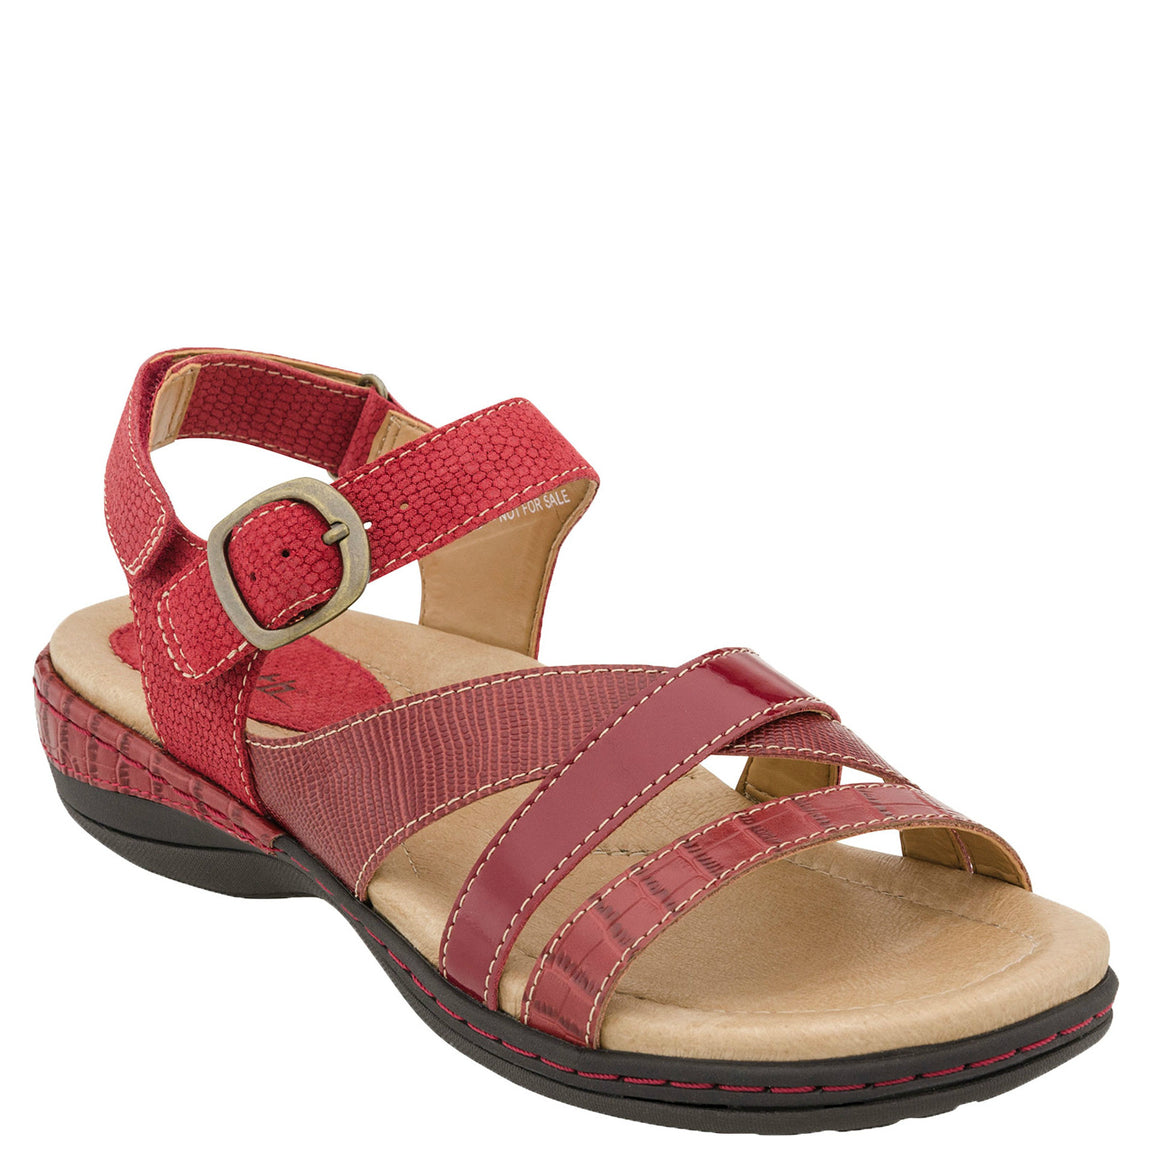 Earth Women's Aster Leather Sandal - Red Croco 601456WCRC - ShoeShackOnline